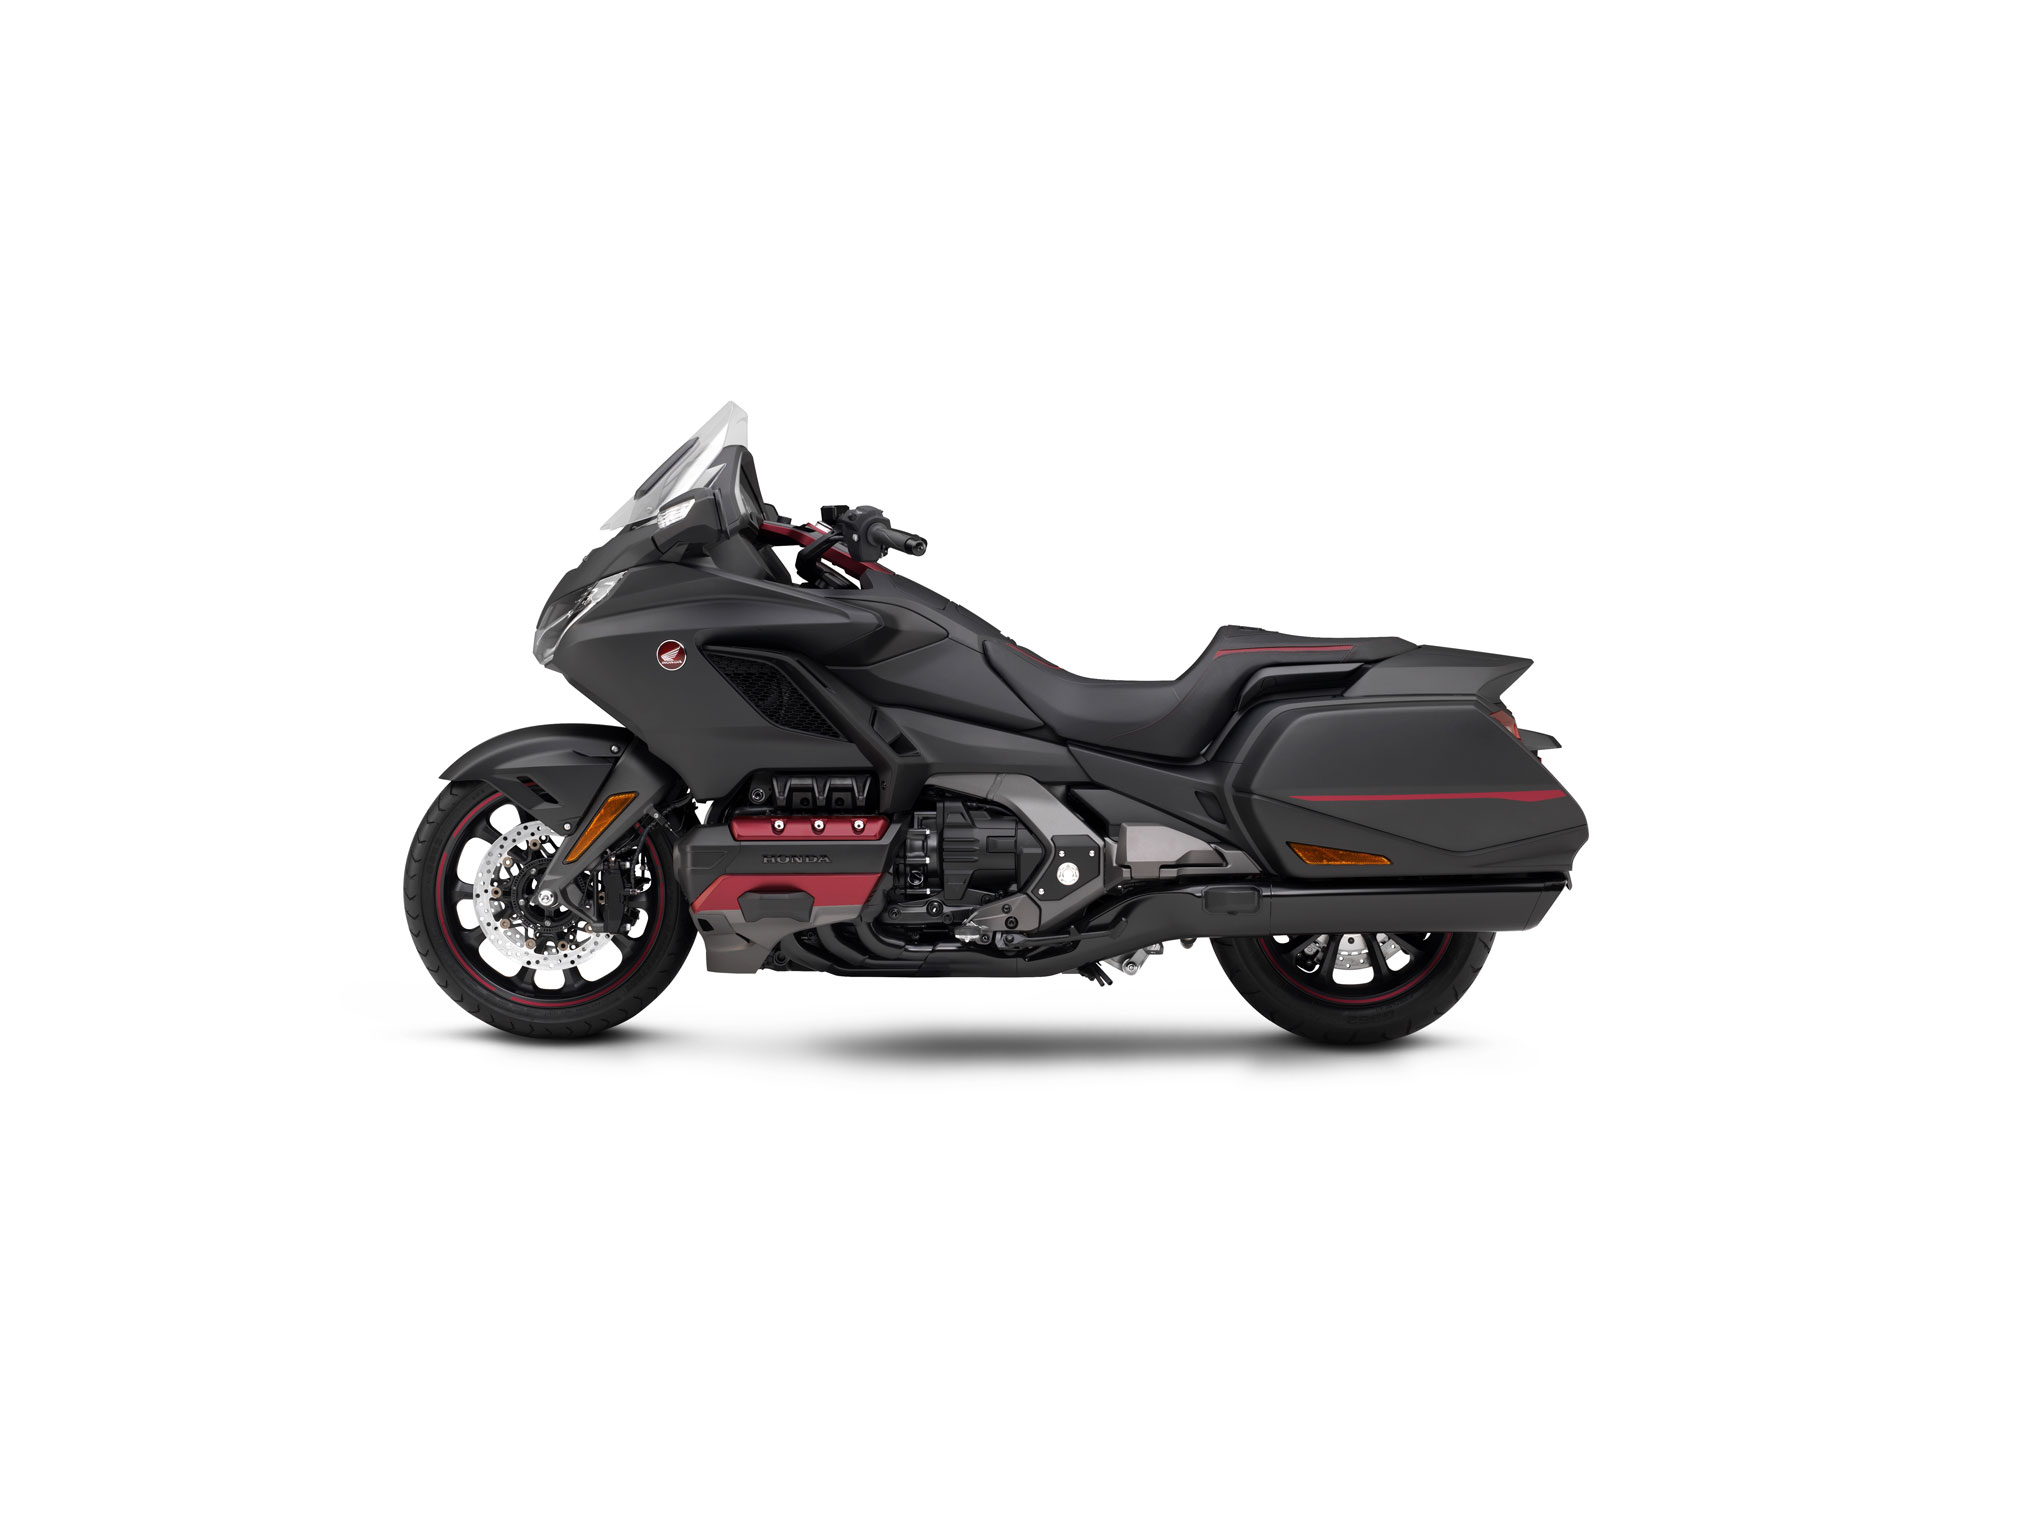 2020 Honda Gold Wing DCT Guide • Total Motorcycle